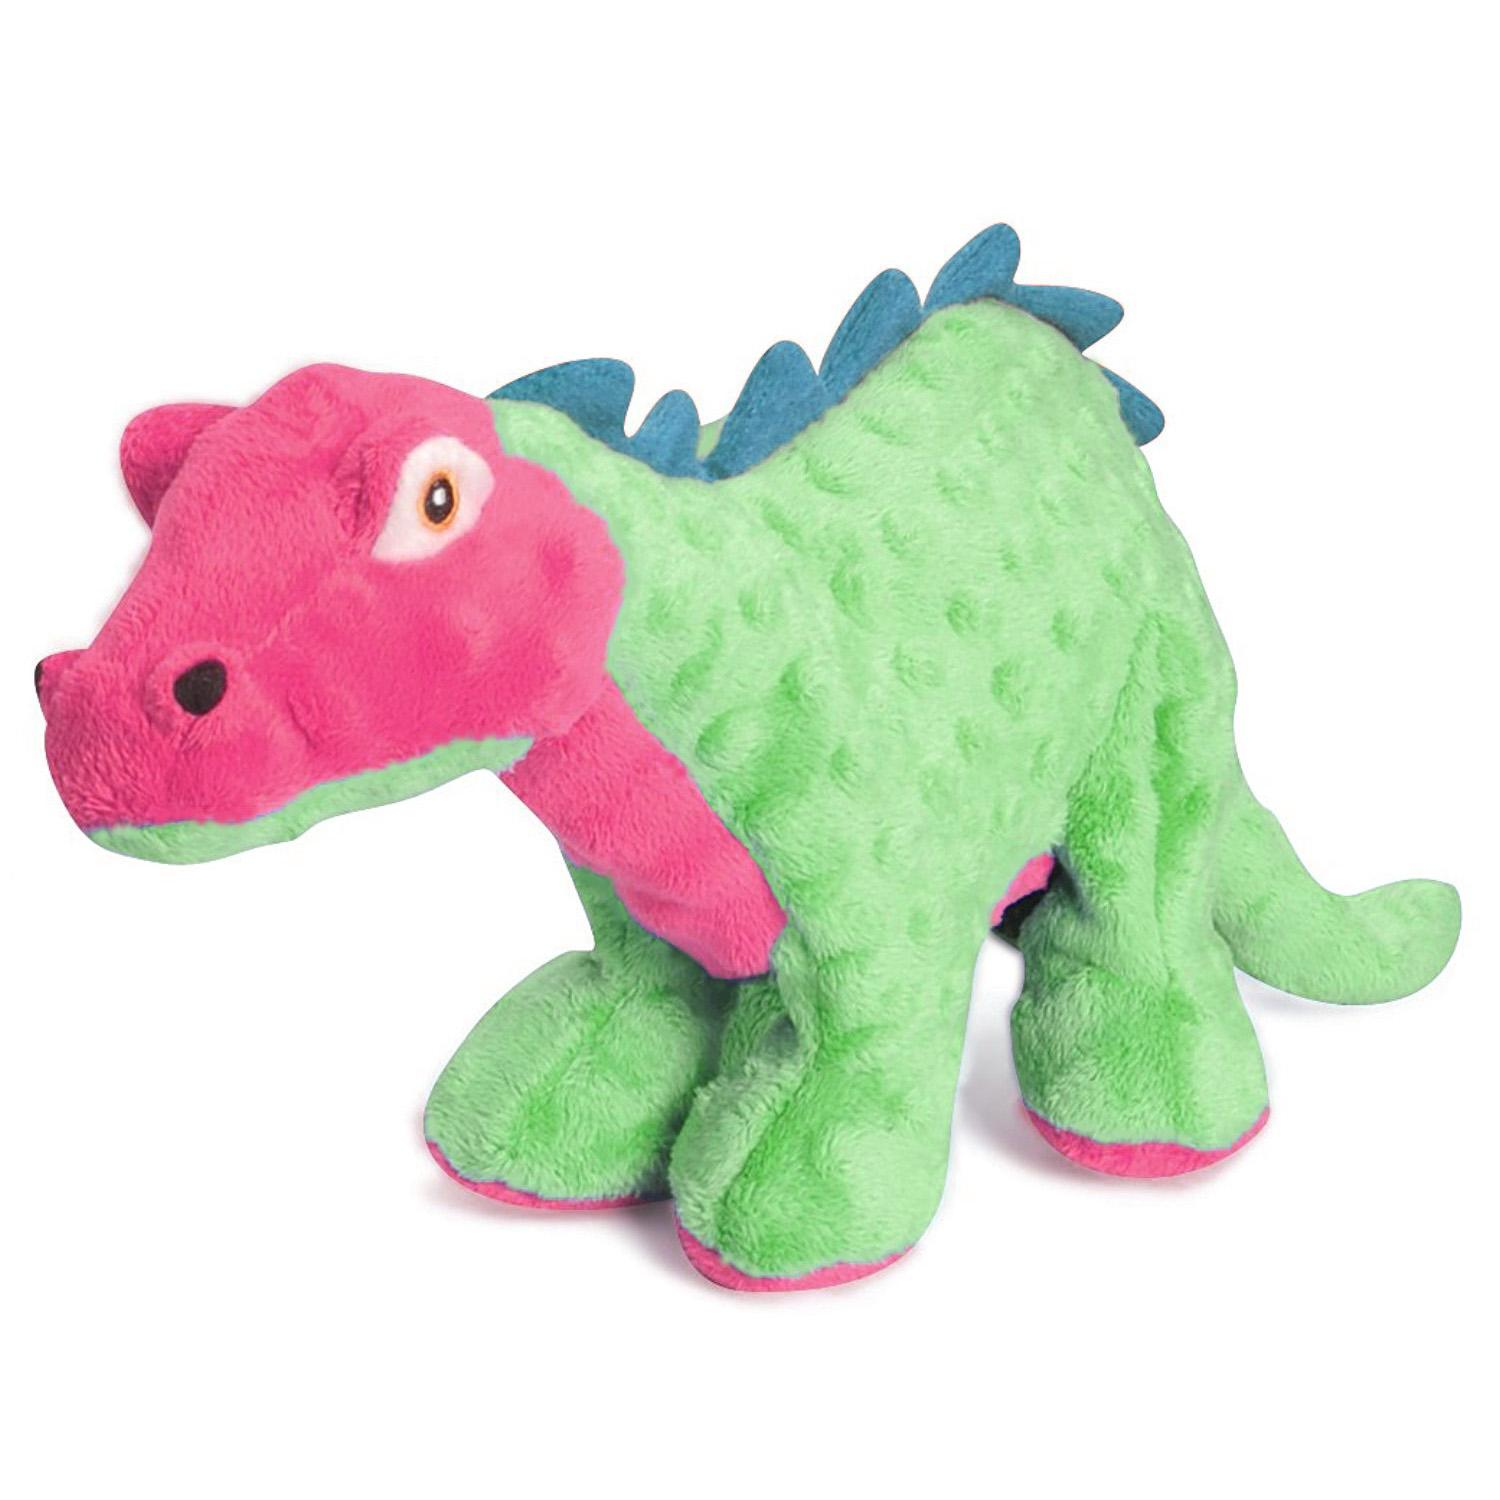 goDog Spike Dino Dog Toy with Chew Guard - Green and Pink